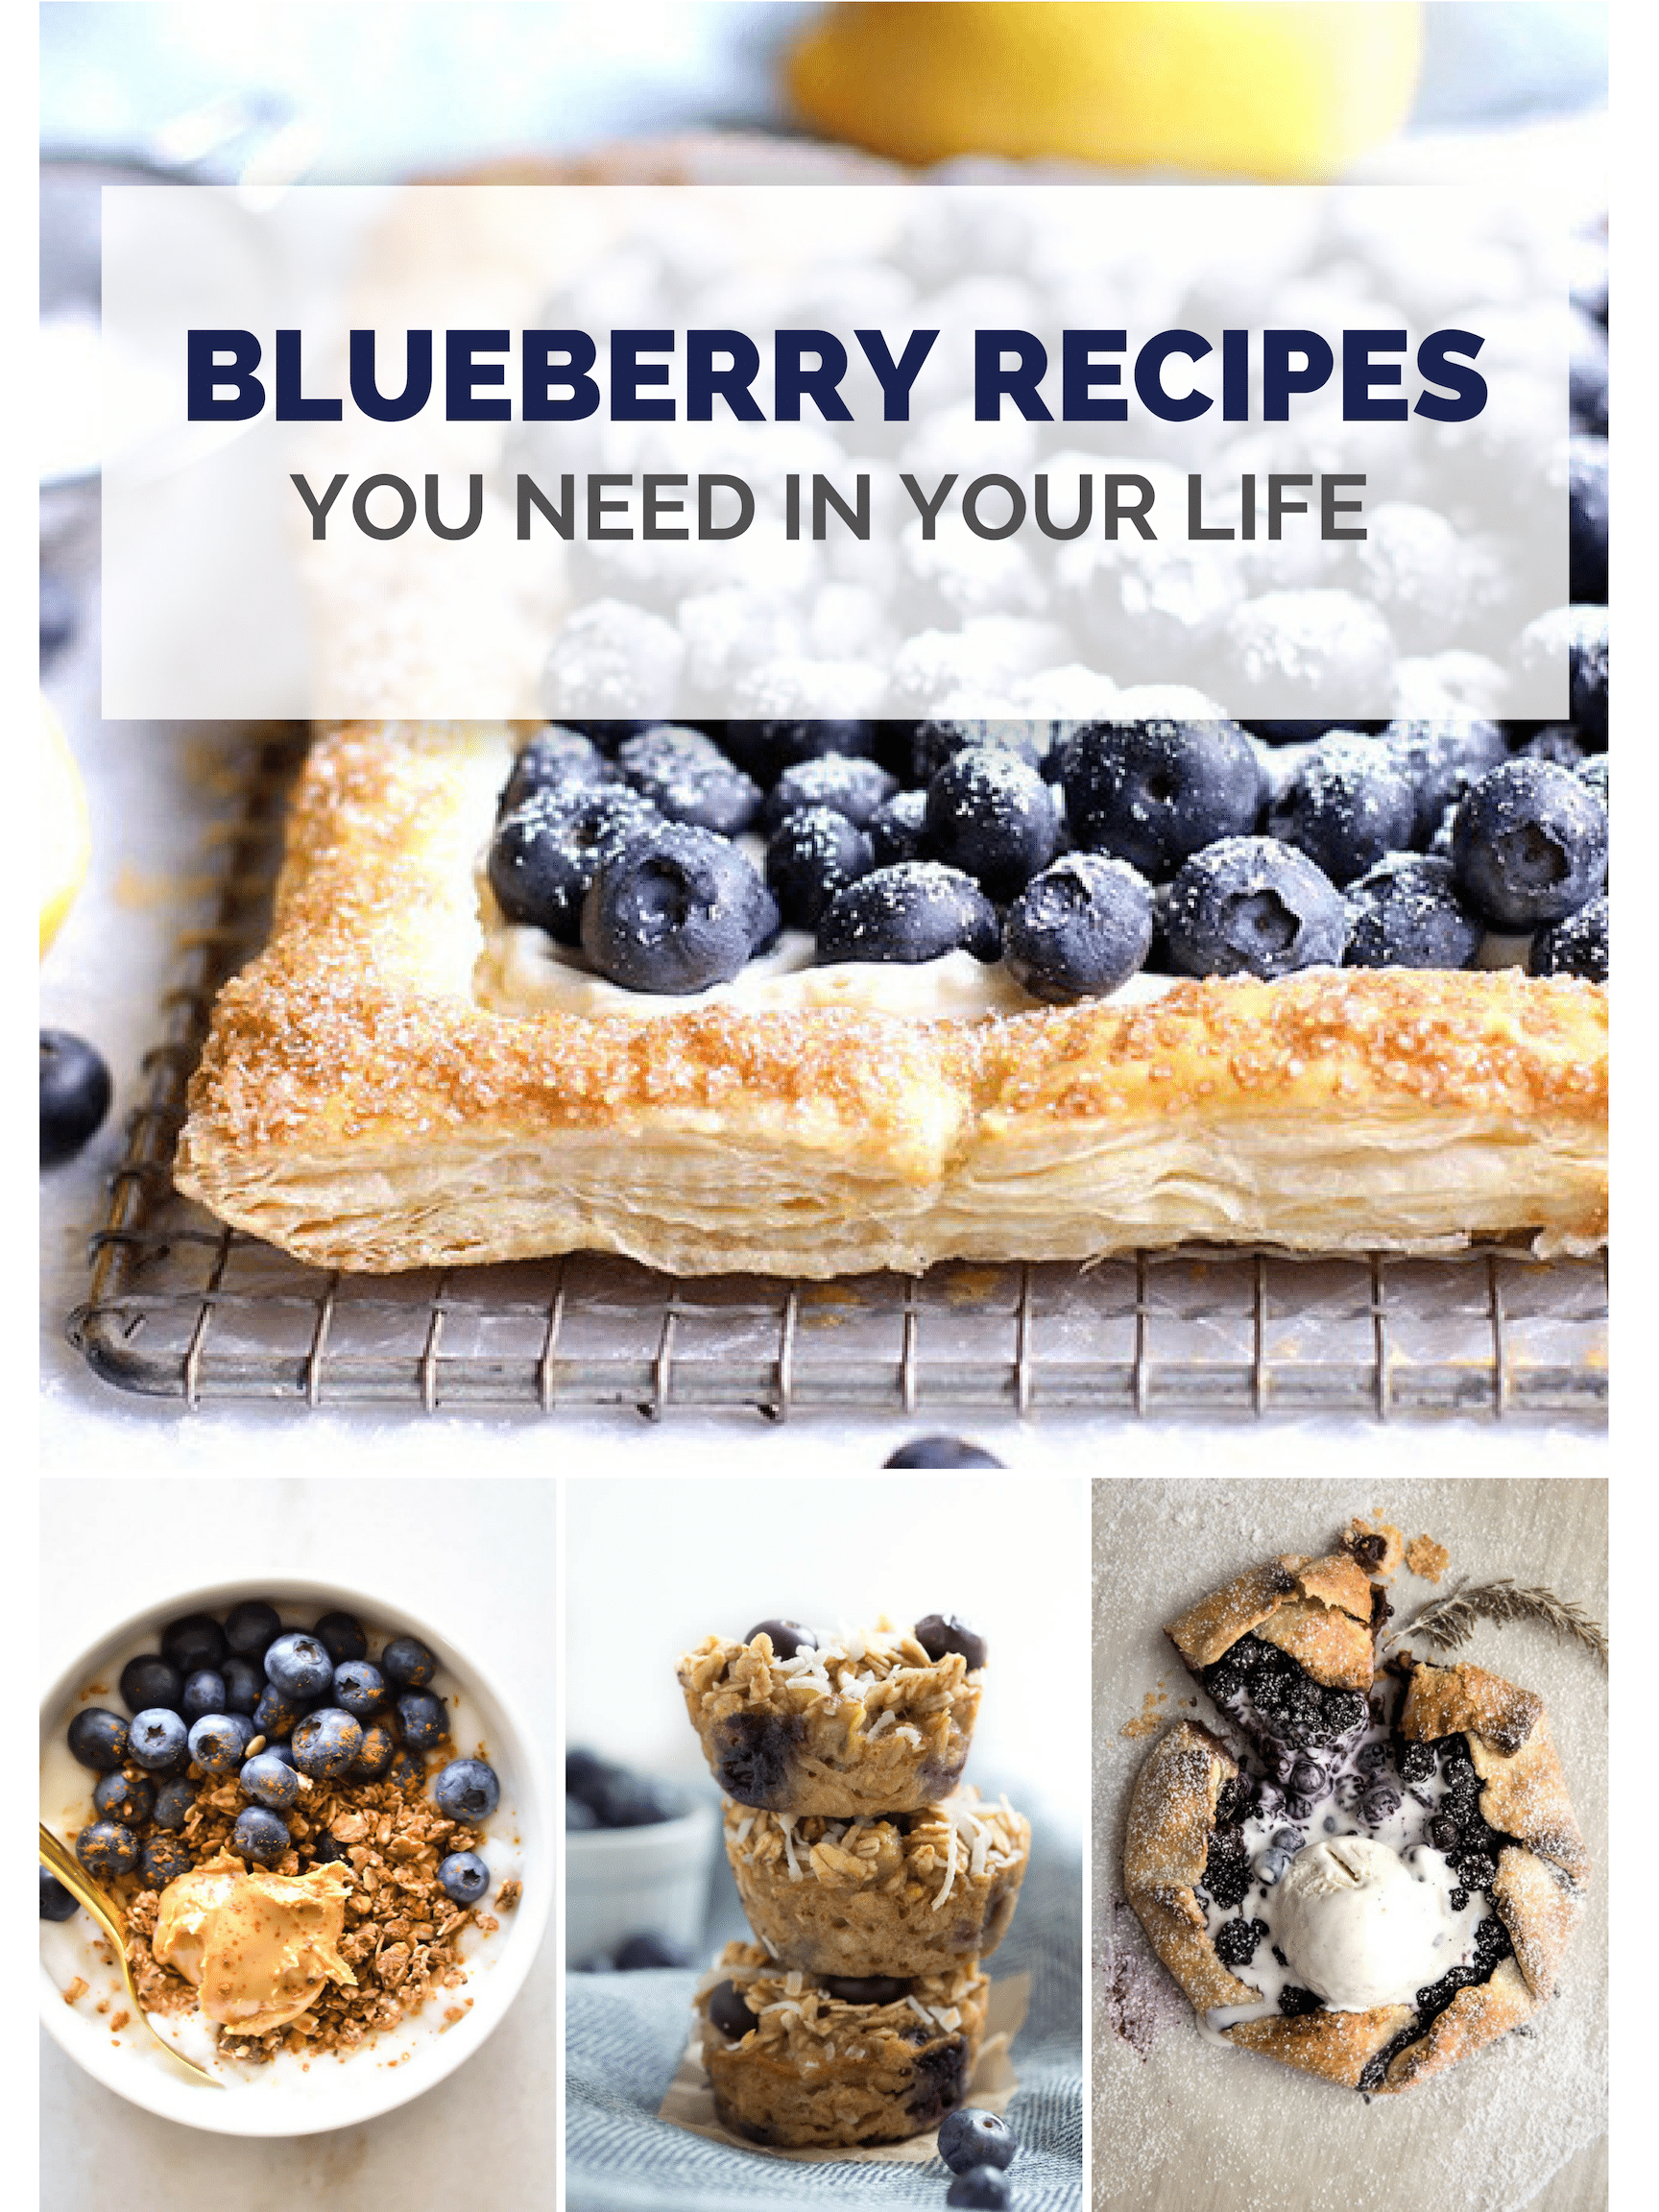 20 Blueberry Recipes You Need in Your Life